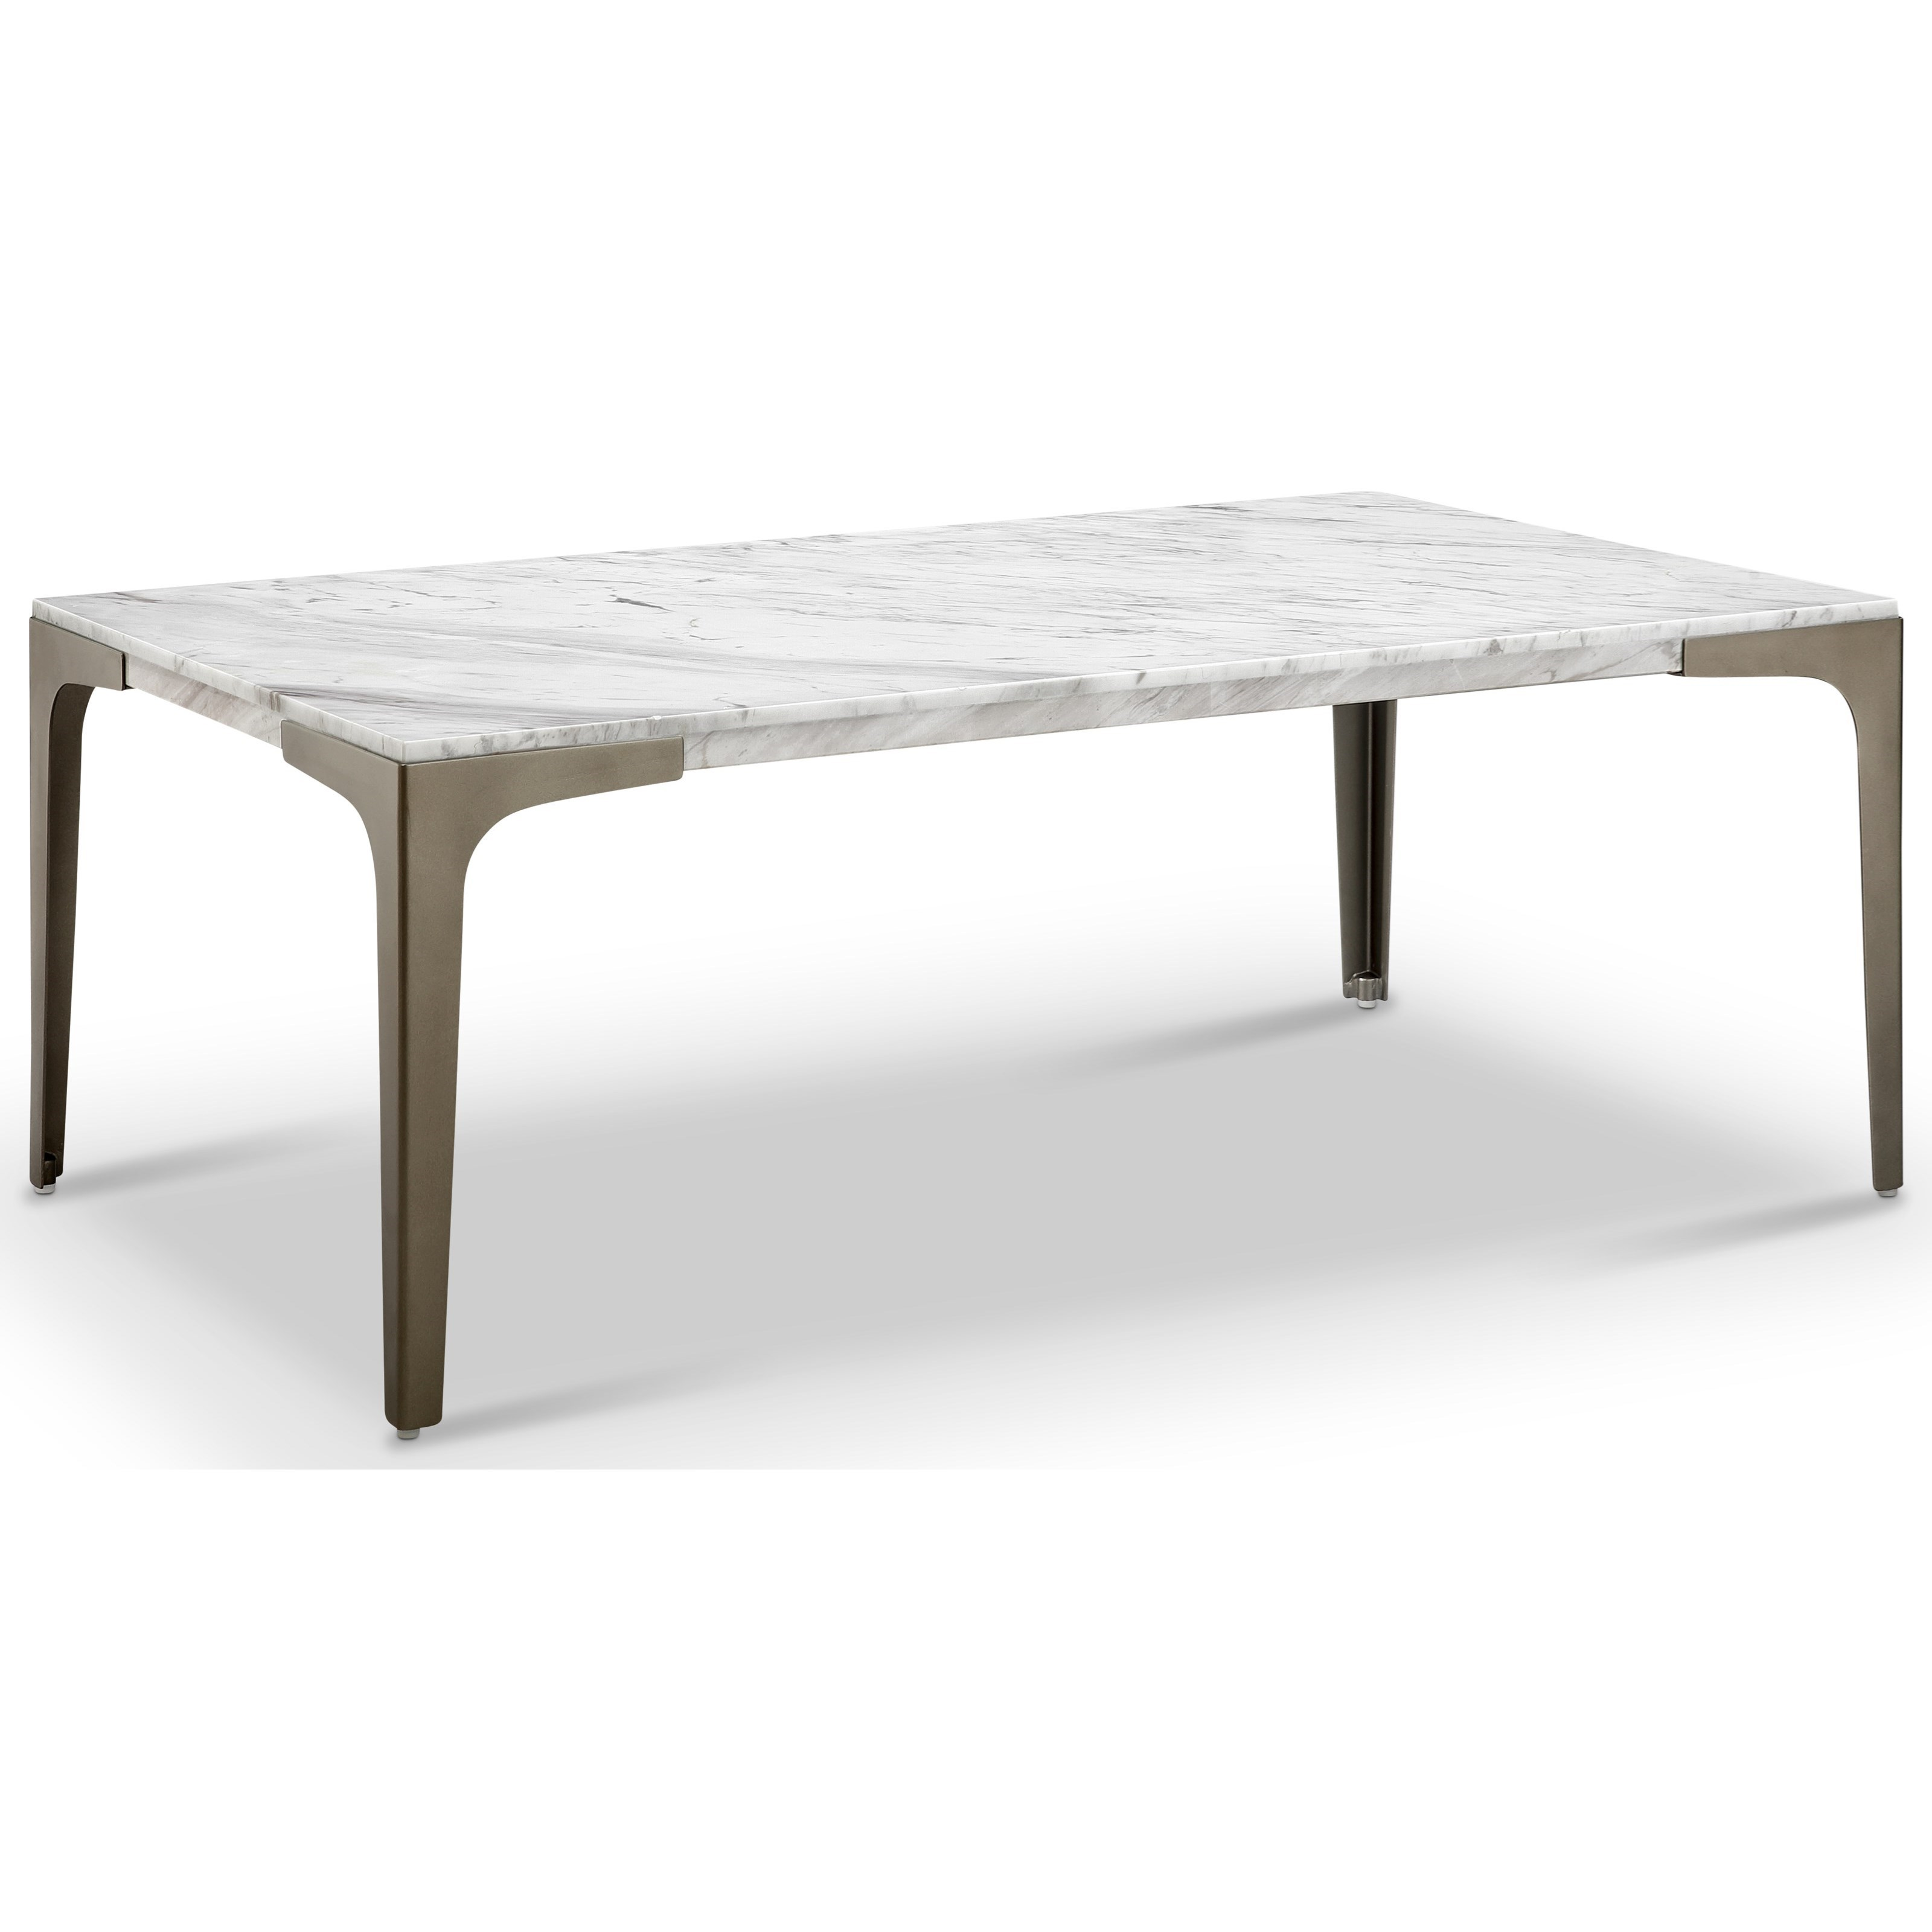 Contemporary Coffee Table.Mercer Contemporary Cocktail Table With Marble Top By Belfort Select At Belfort Furniture